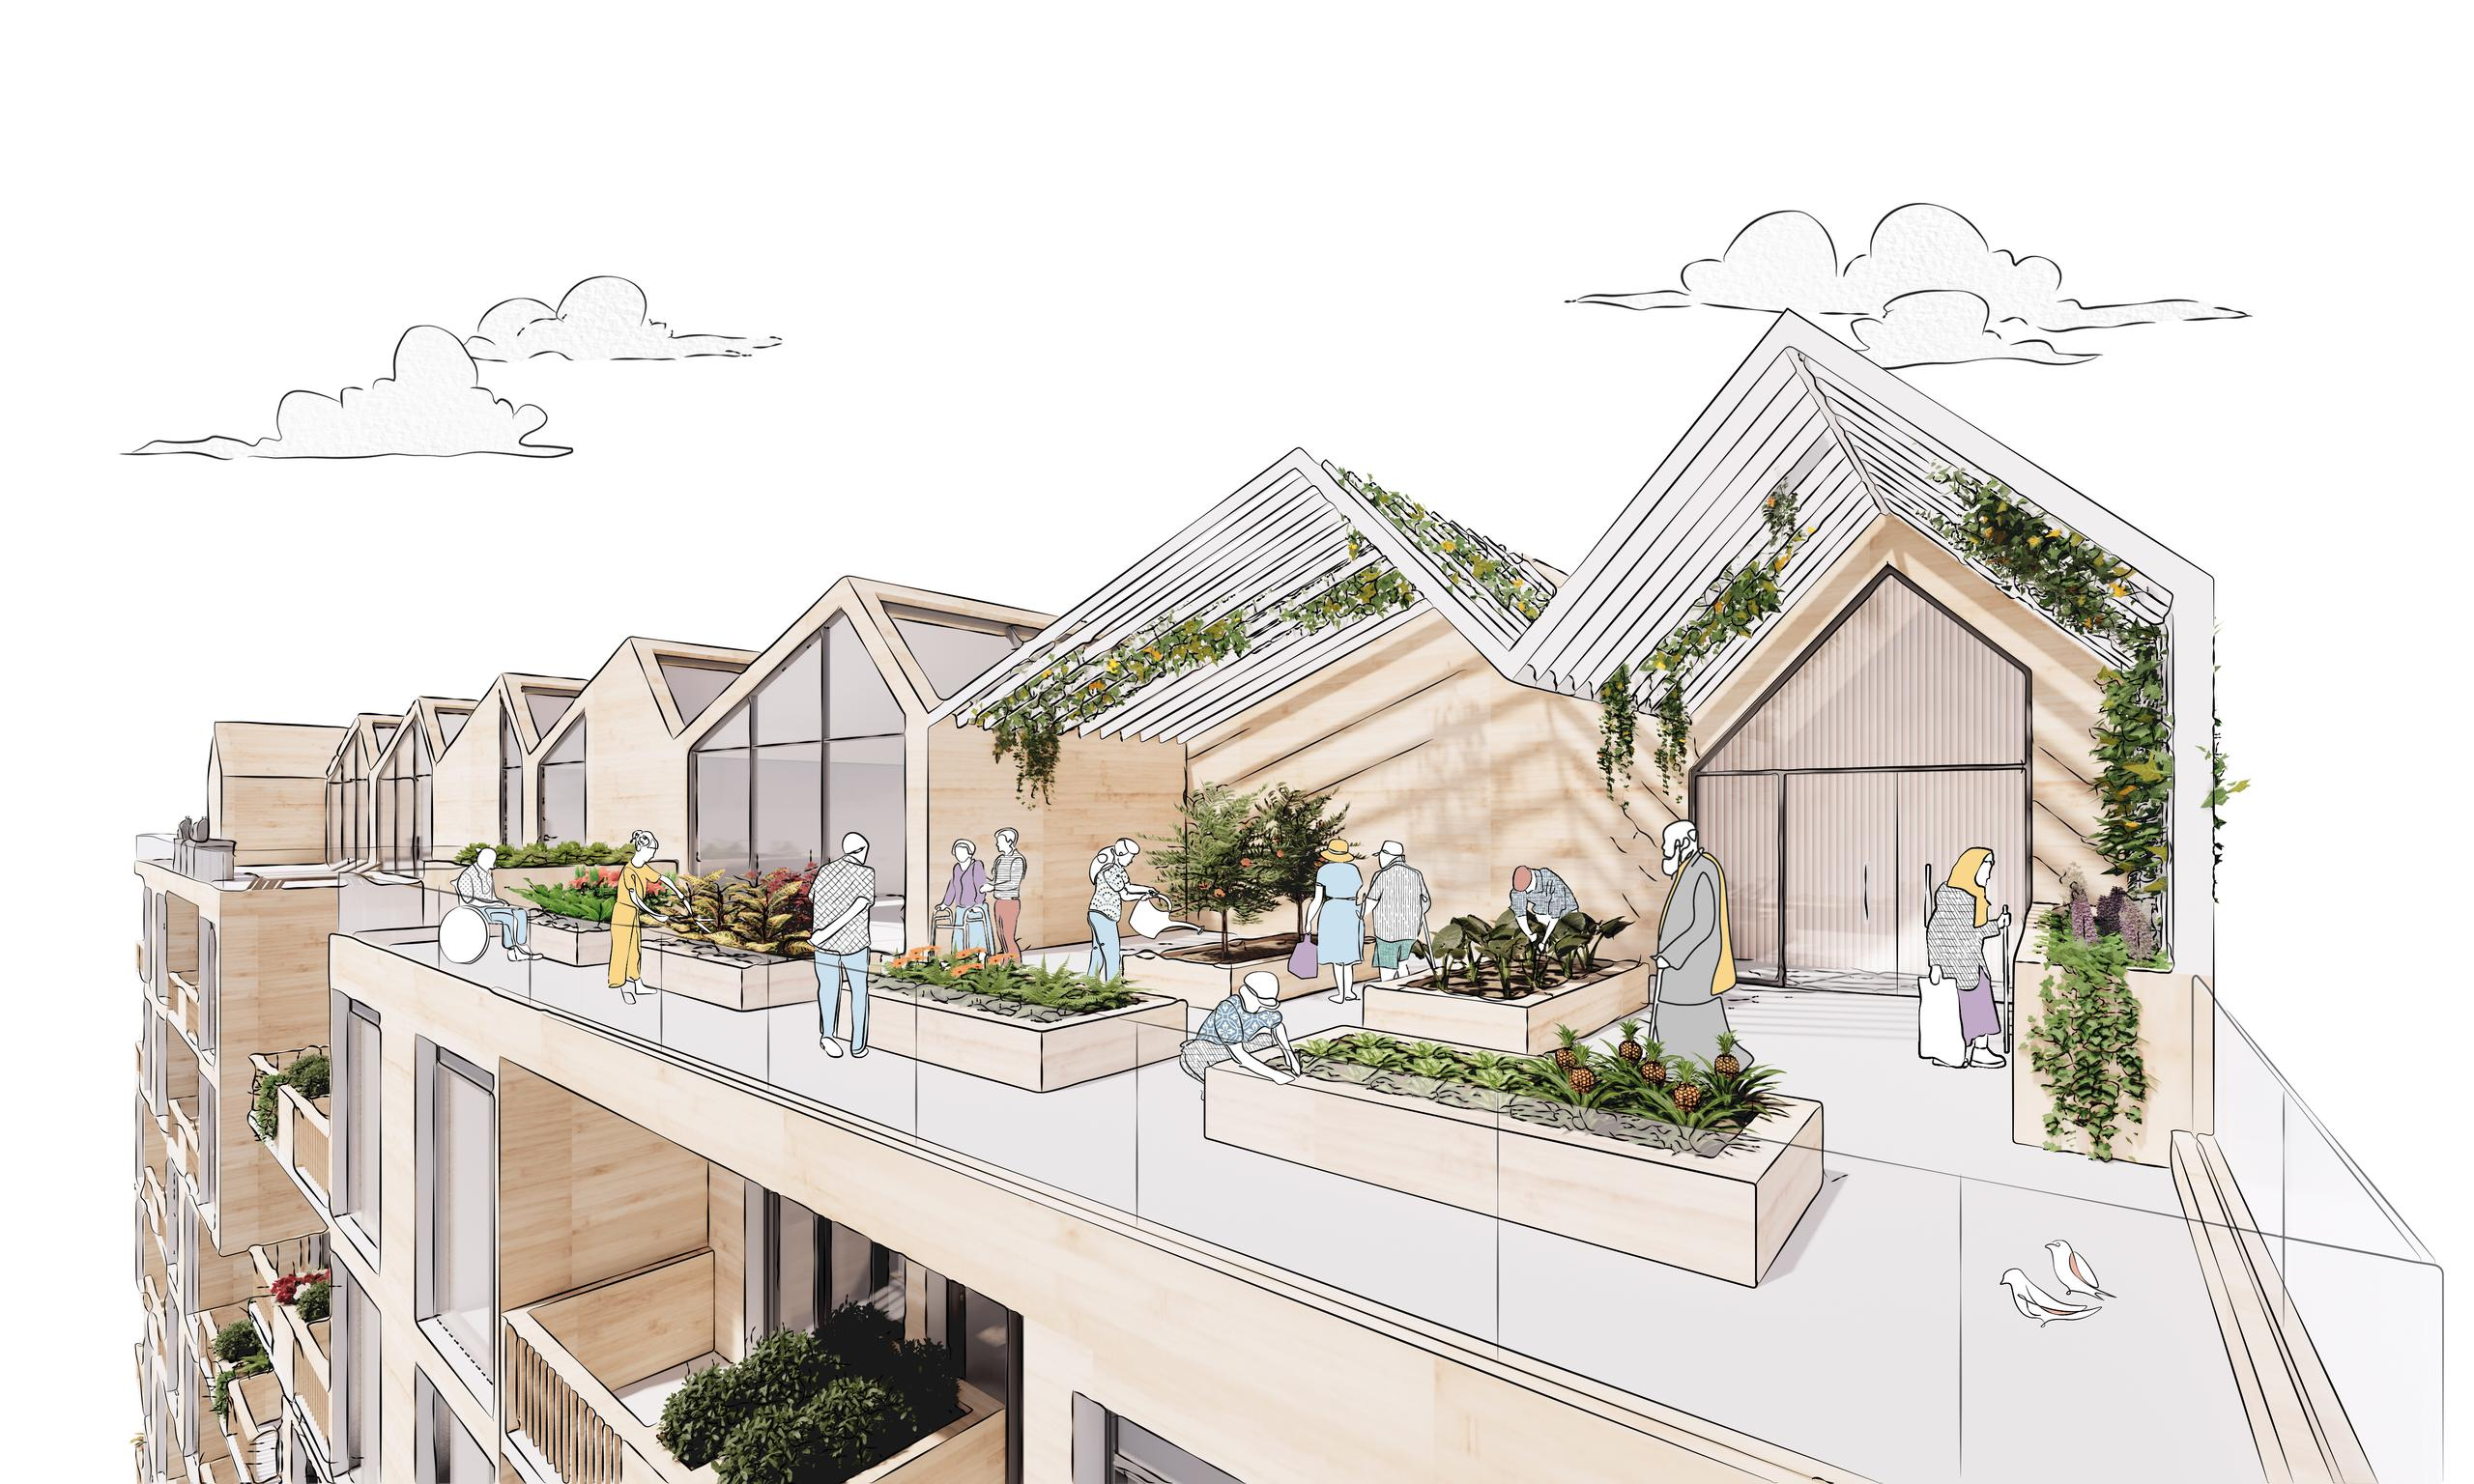 rendering of a rooftop amenity with terraces, garden plots, gabled pitched trellises with greenery